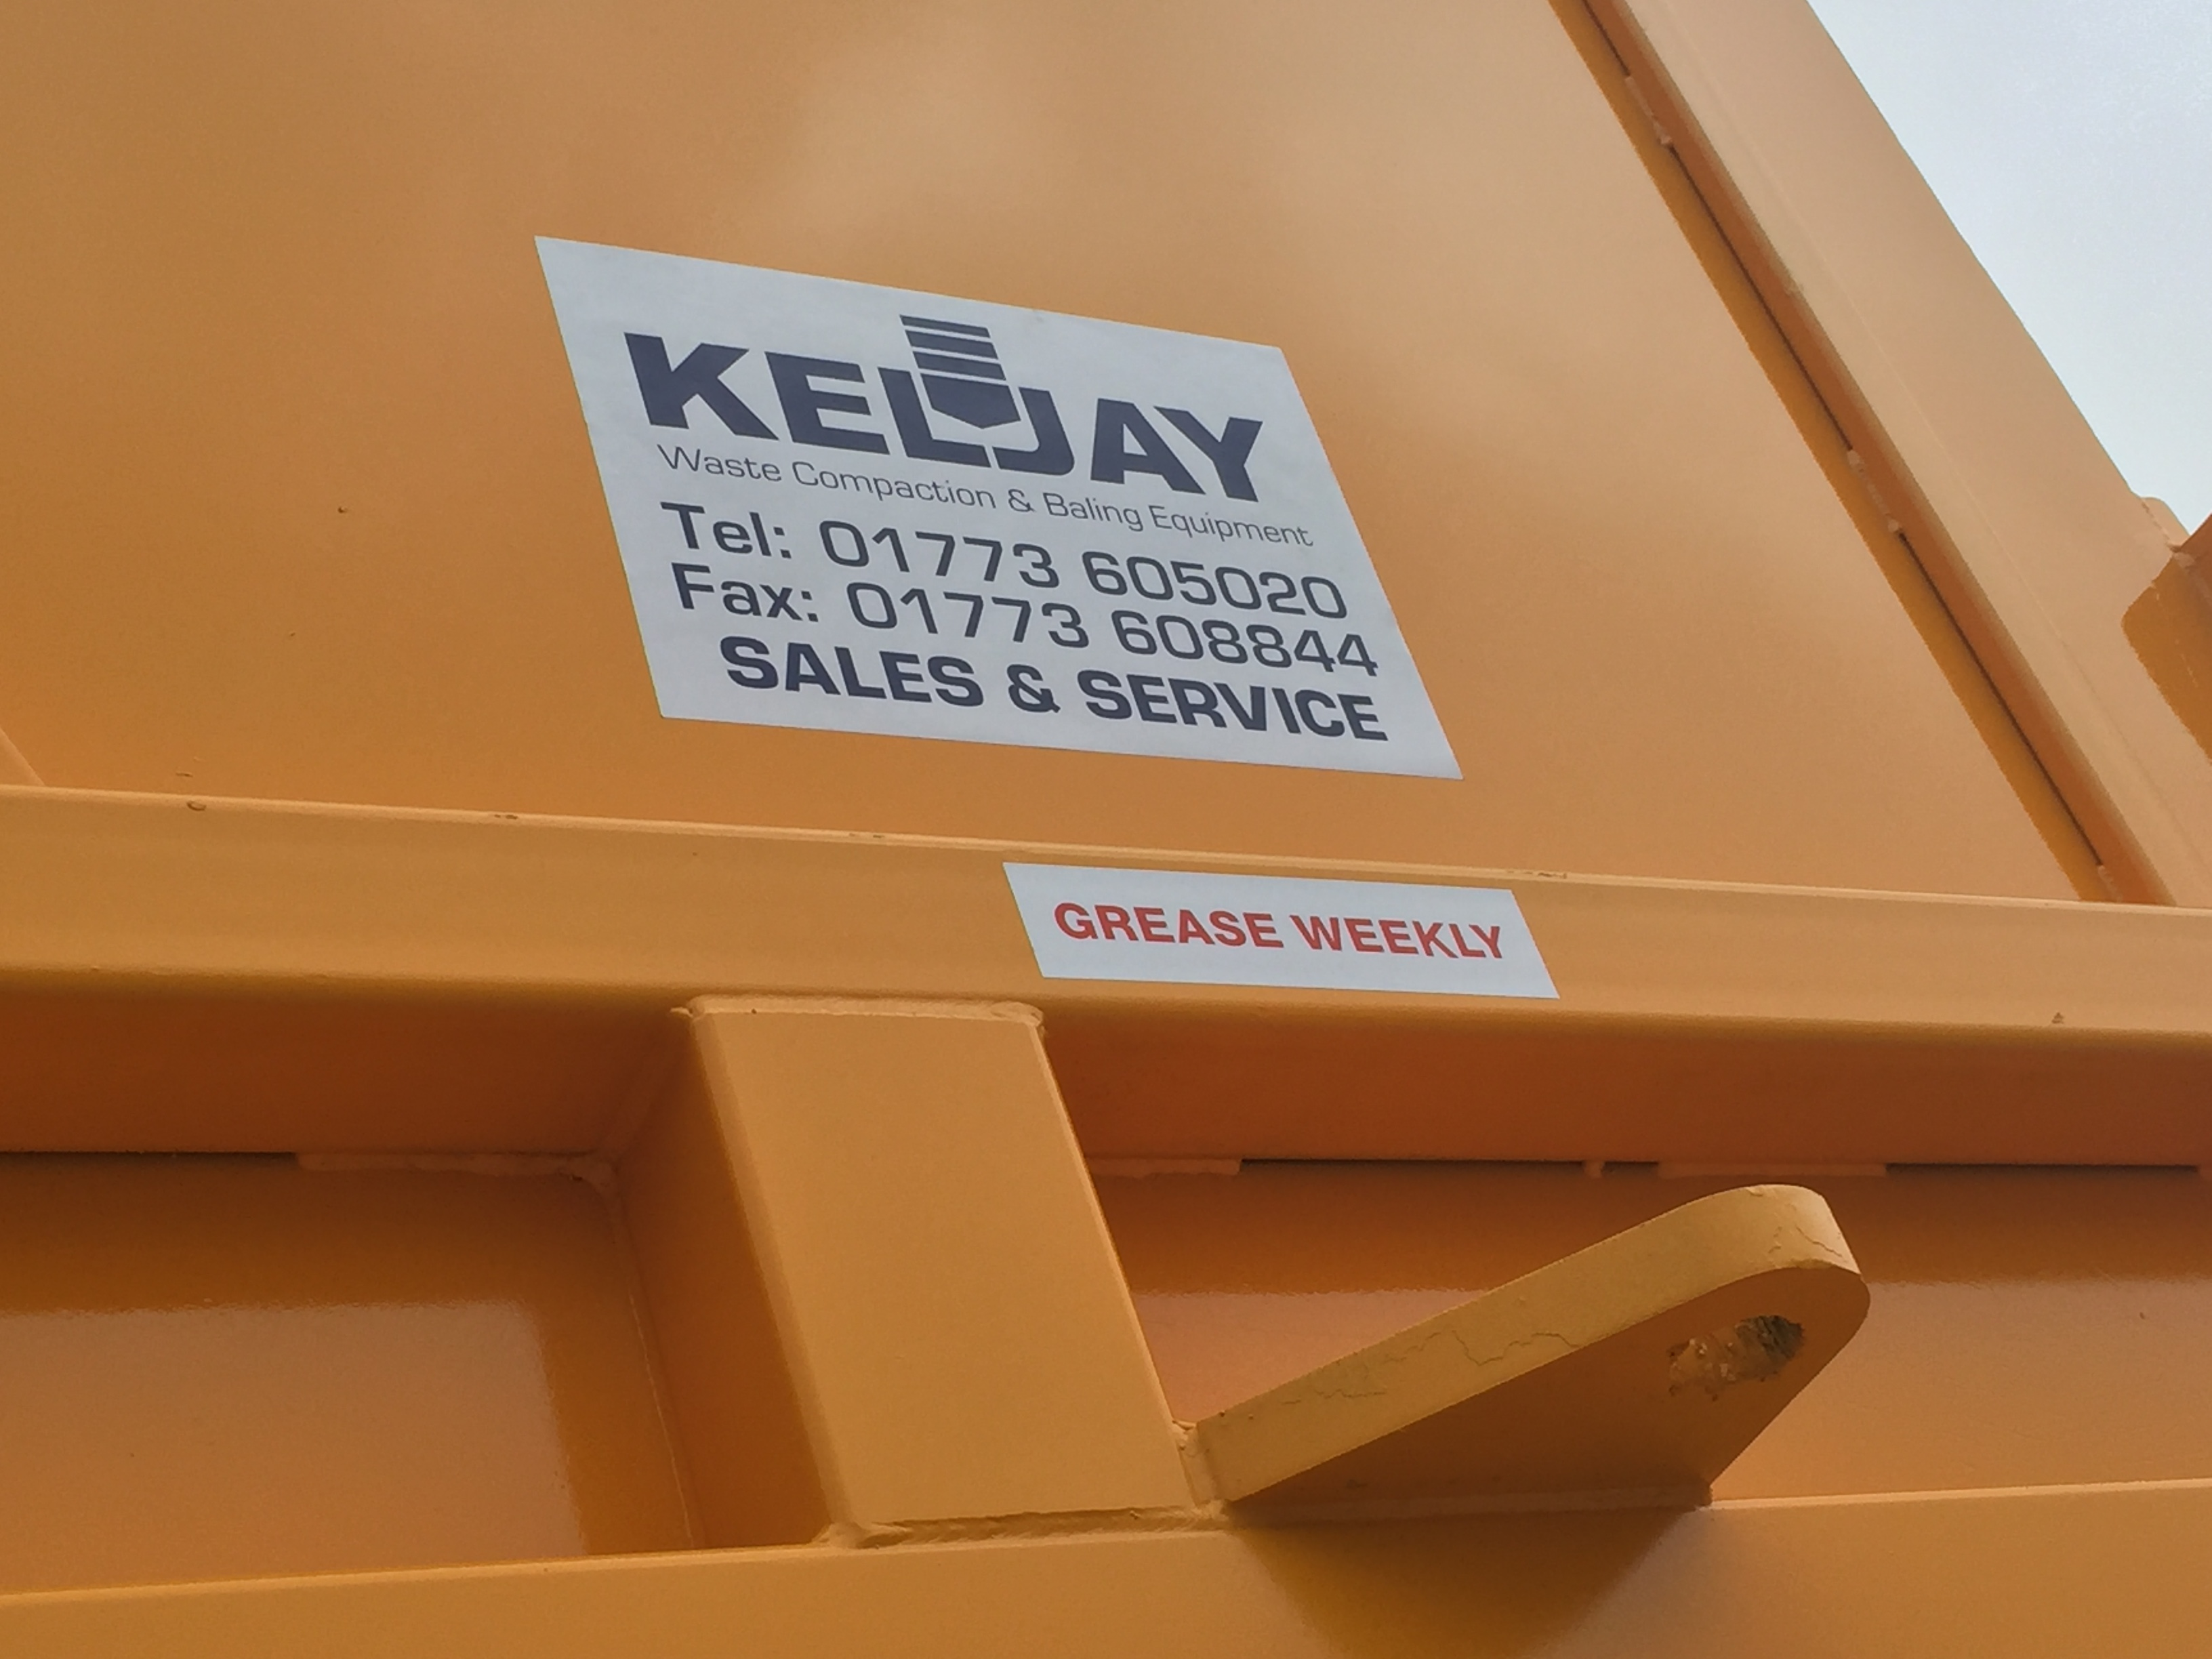 Our latest bespoke waste compactor